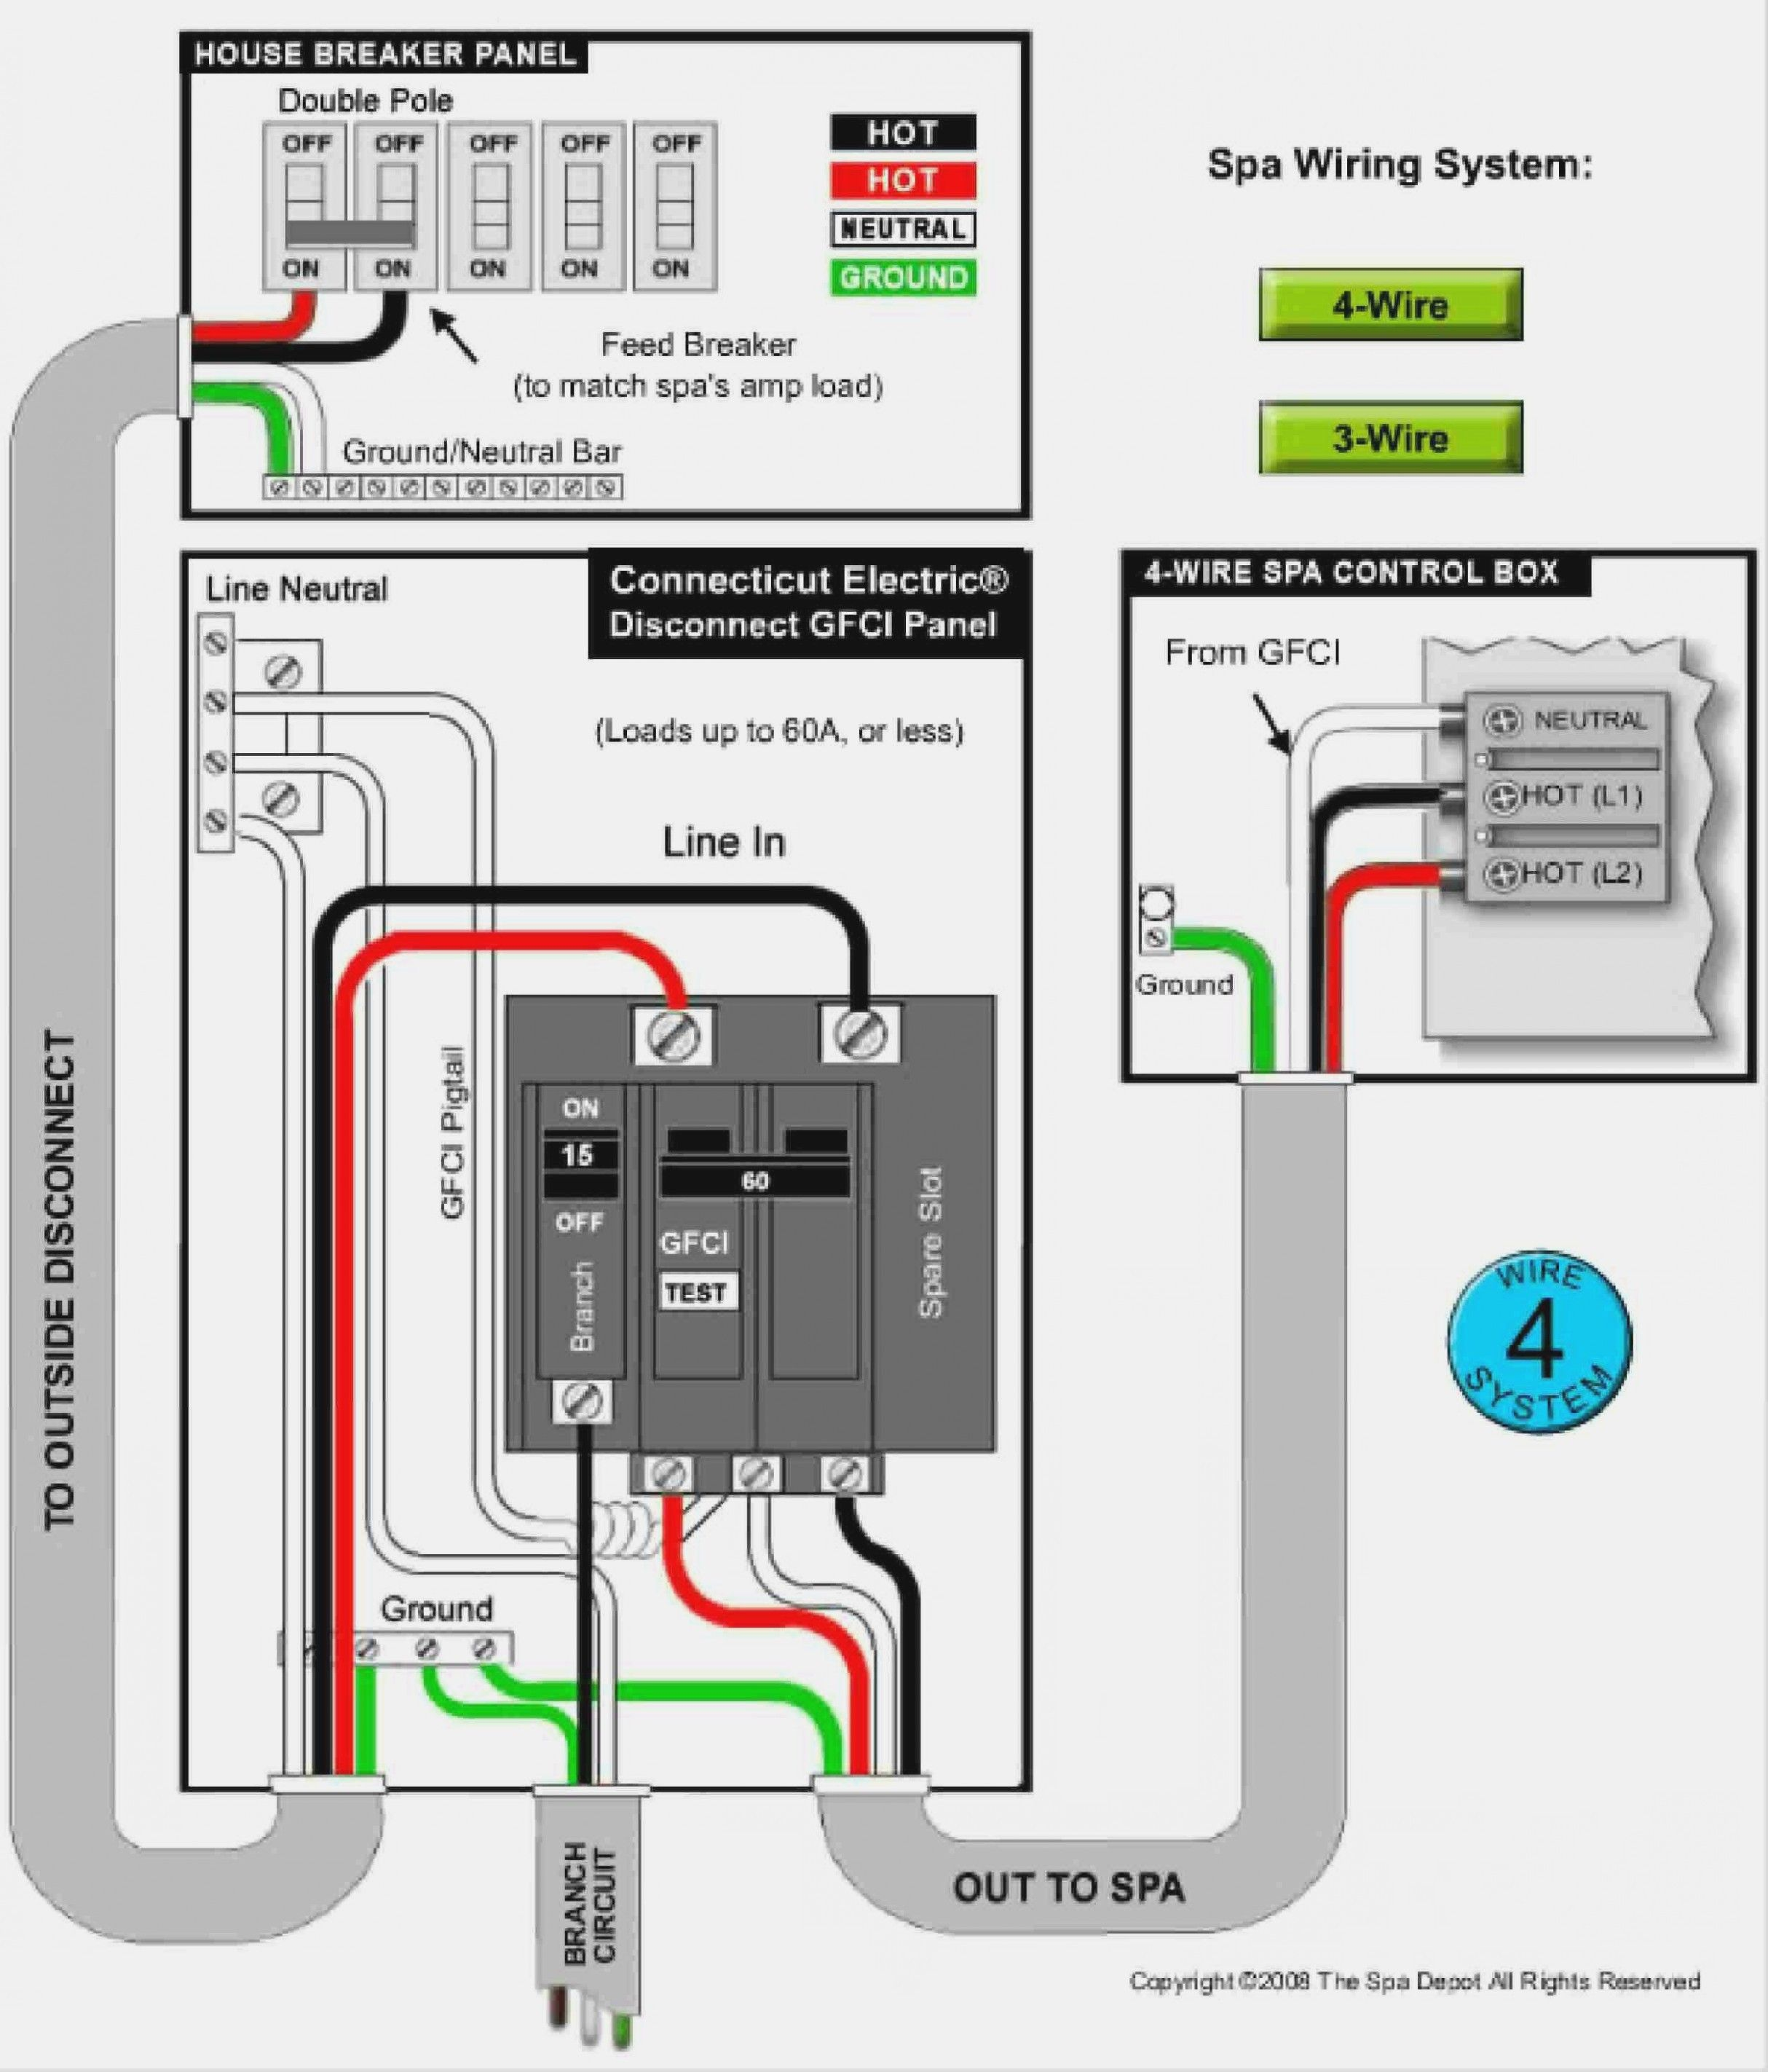 spa gfci wiring data diagram schematic spa gfci wiring instructions spa gfci wiring [ 2428 x 2845 Pixel ]